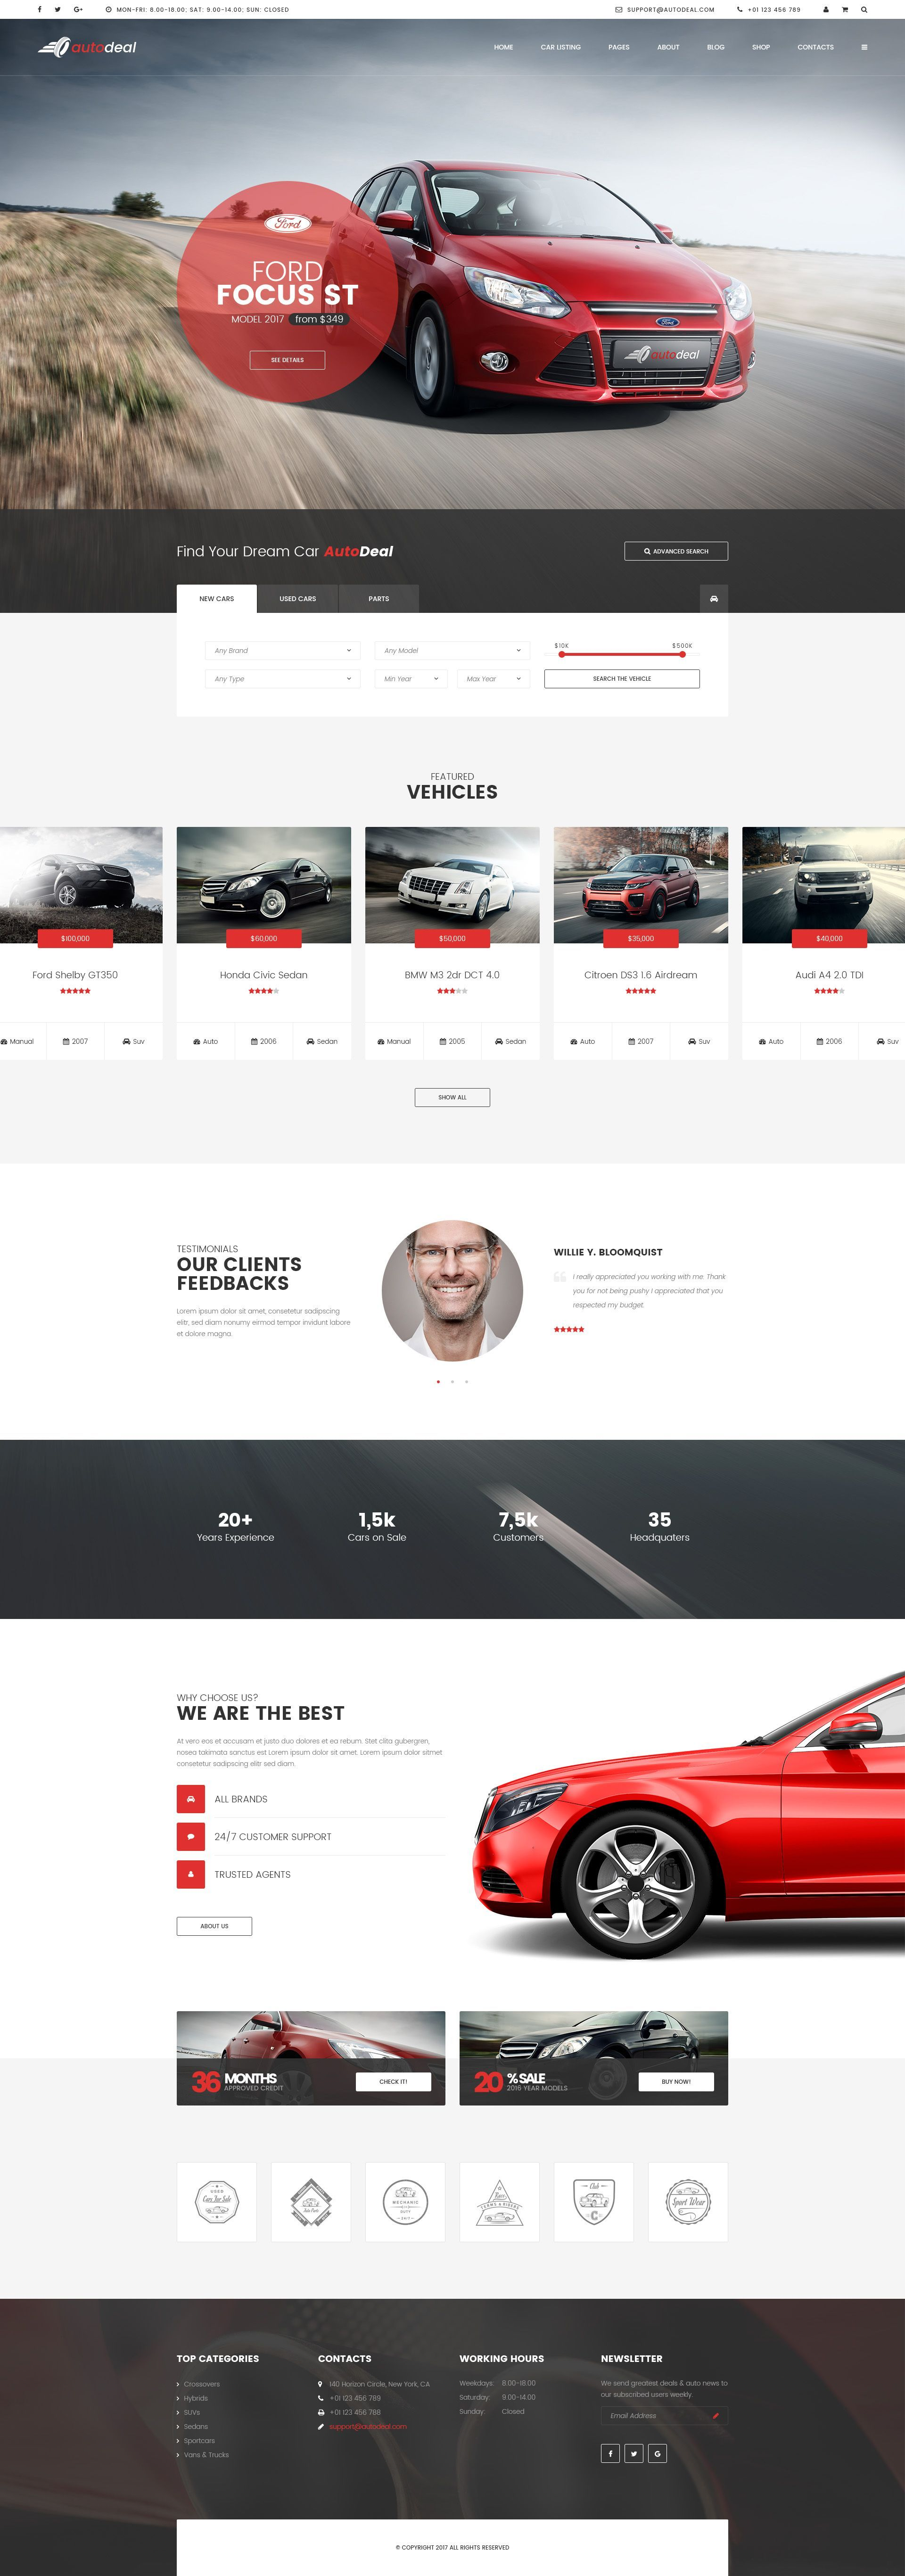 Ultra modern and super cool multipage PSD template for car and bike on portal design, header design, photography design, contact design, blog design, history design, company design, corporate design, archives design, career design, forms design, design design, phone design, sharepoint site design, journal table of contents design, my own dress design, faq design, e-mail design, education design, modern intranet design,